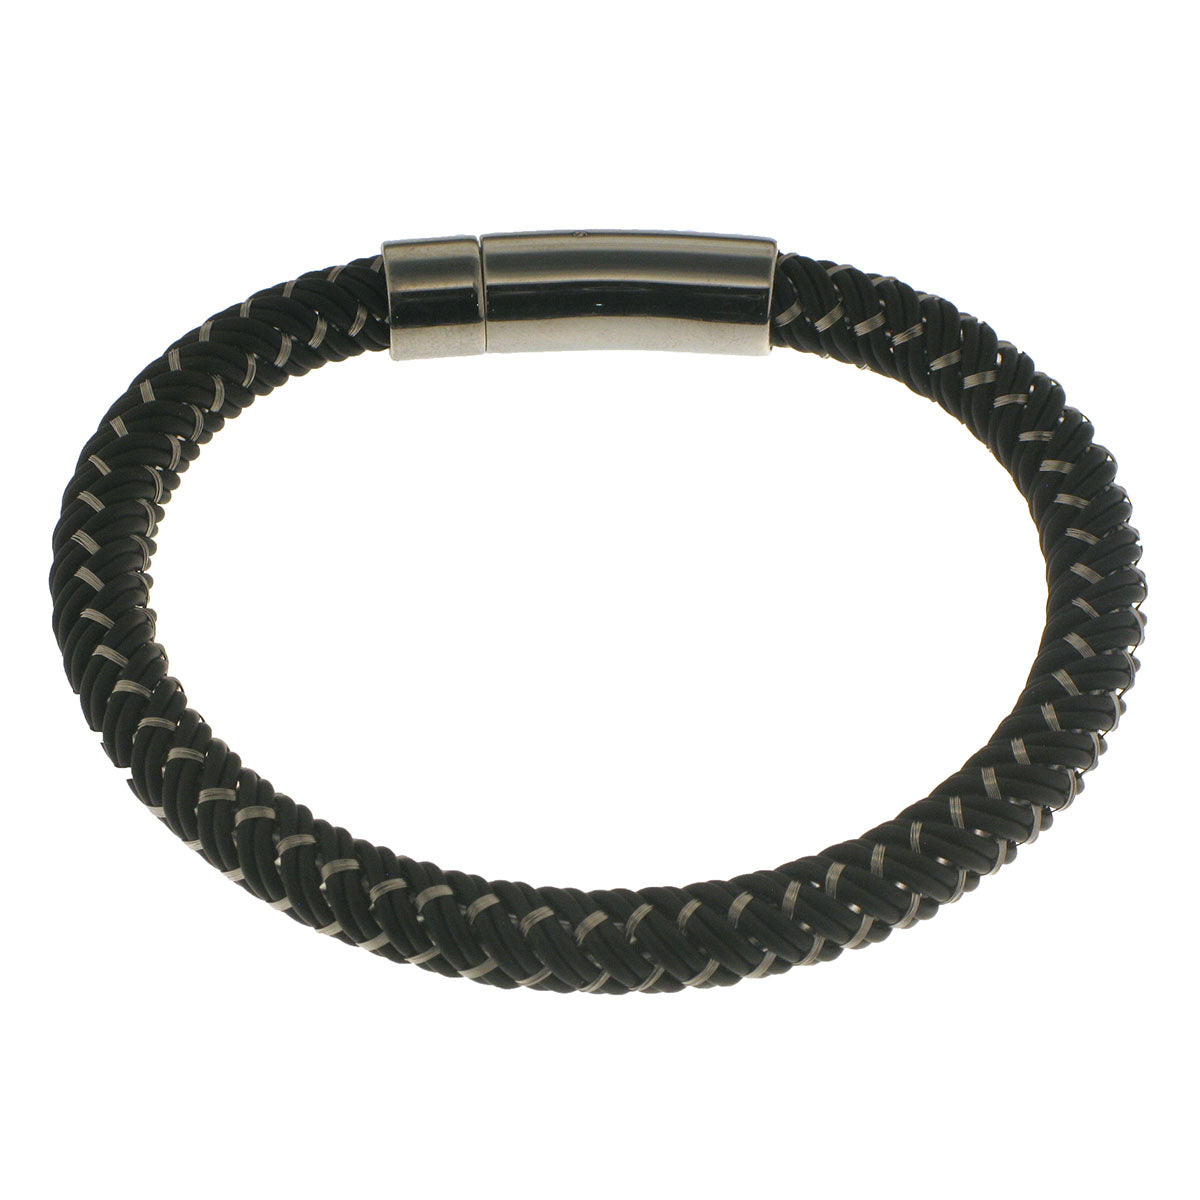 Herringbone Round Weave Bracelet in Black/Stainless